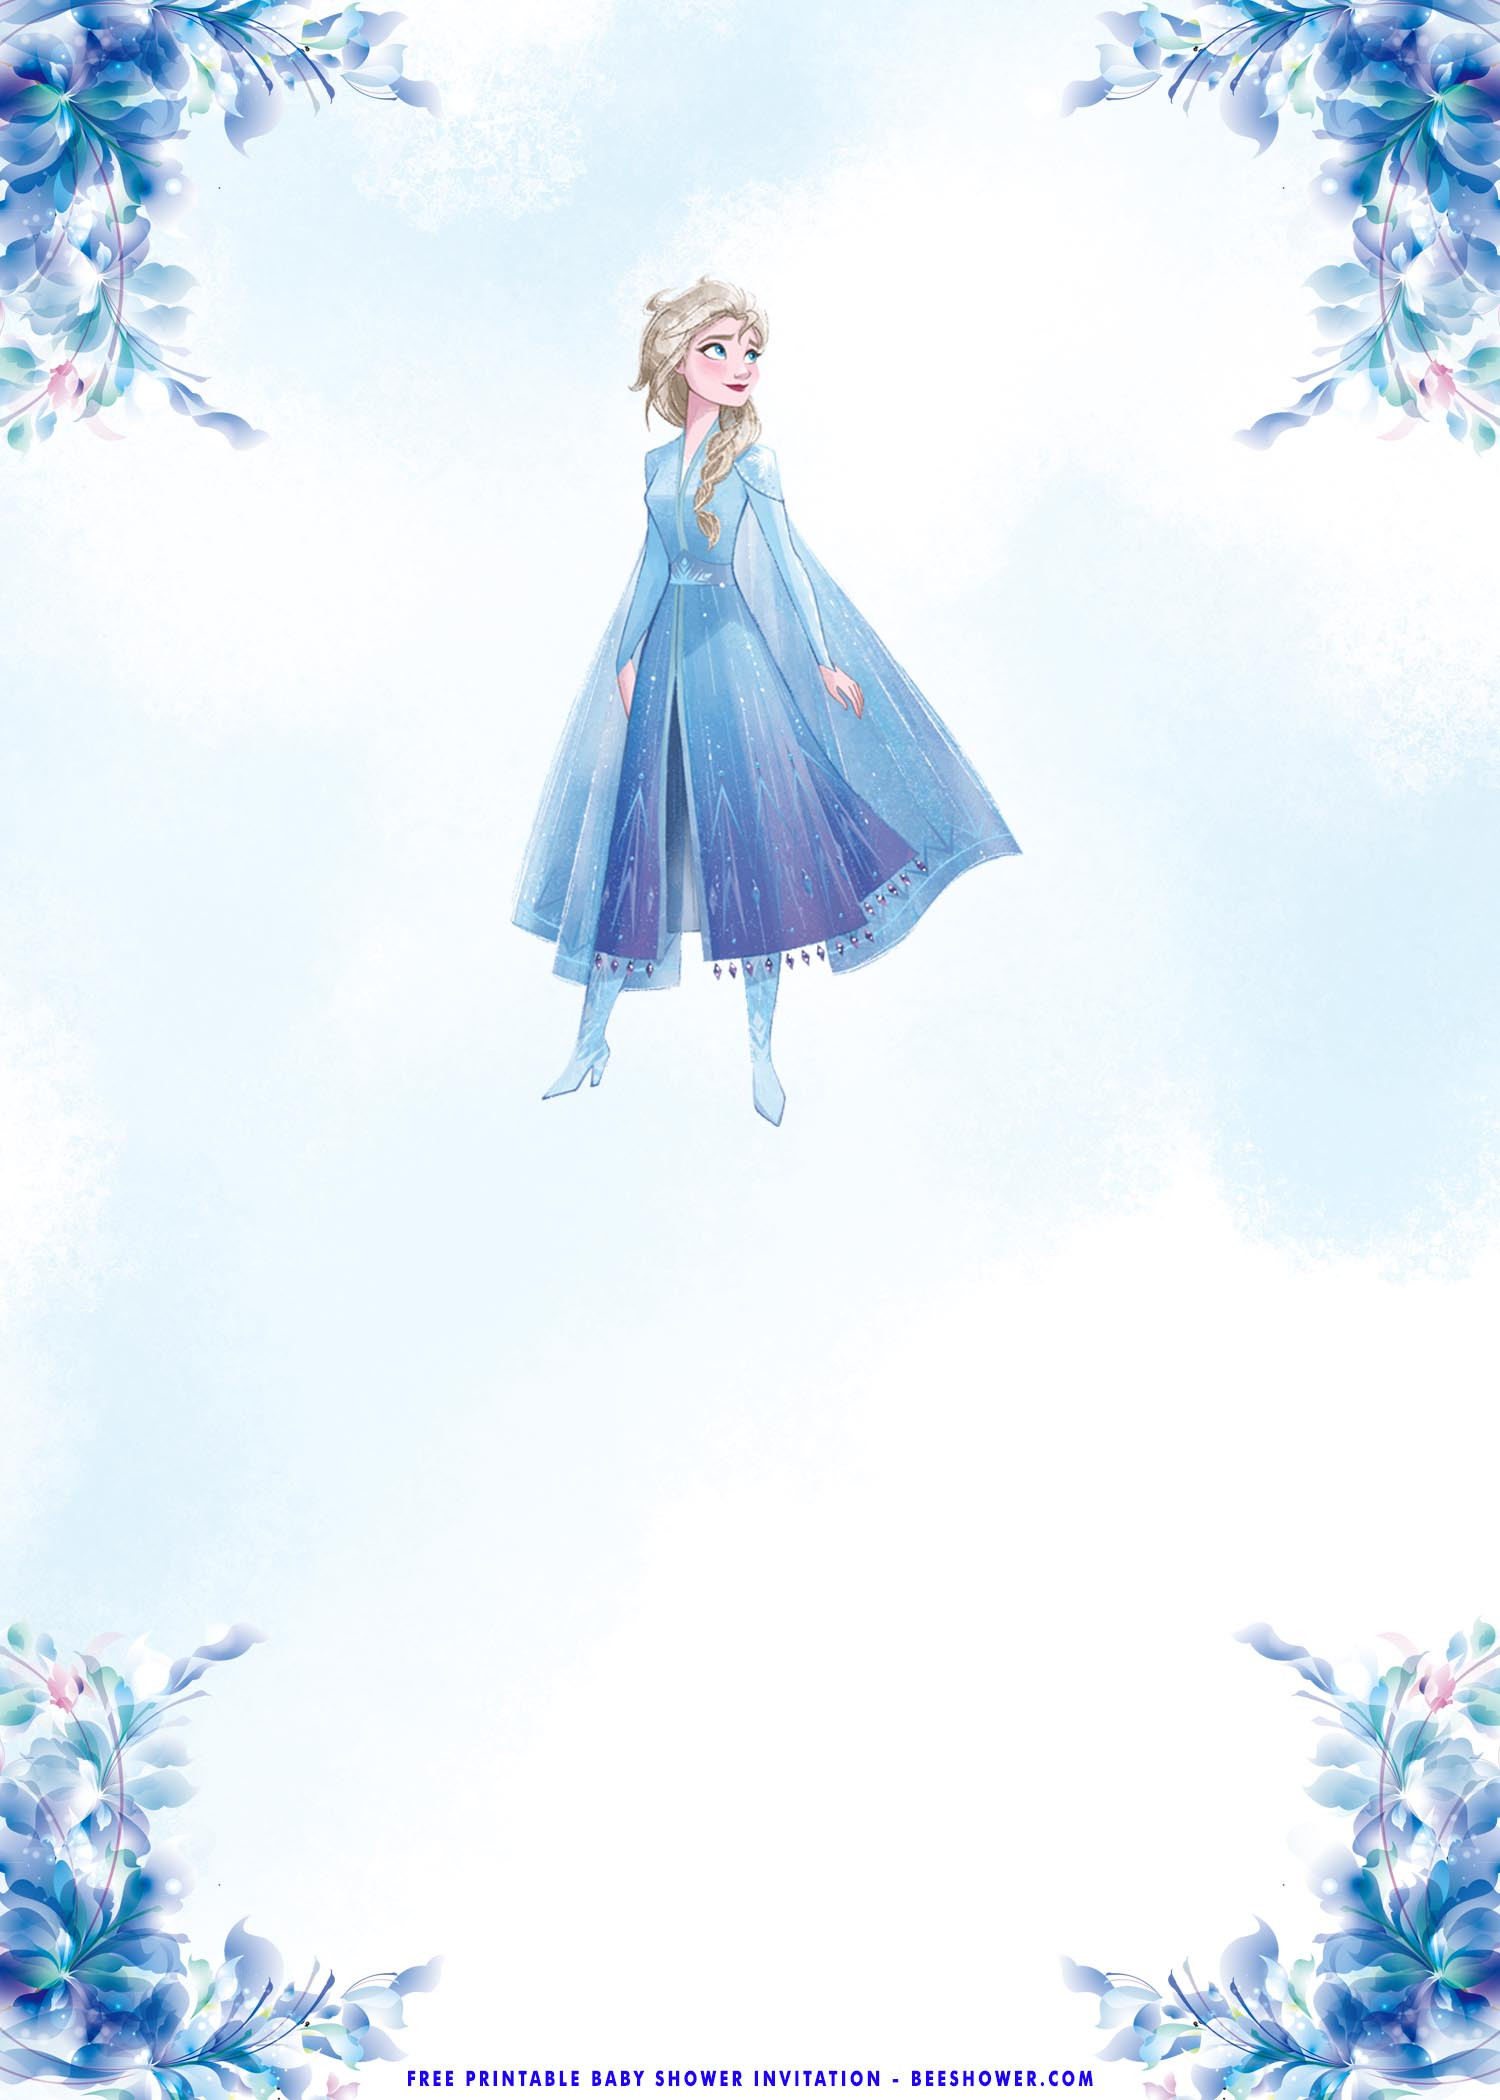 Frozen Invitations Printable Free Printable – Frozen Elsa Baby Shower Invitation